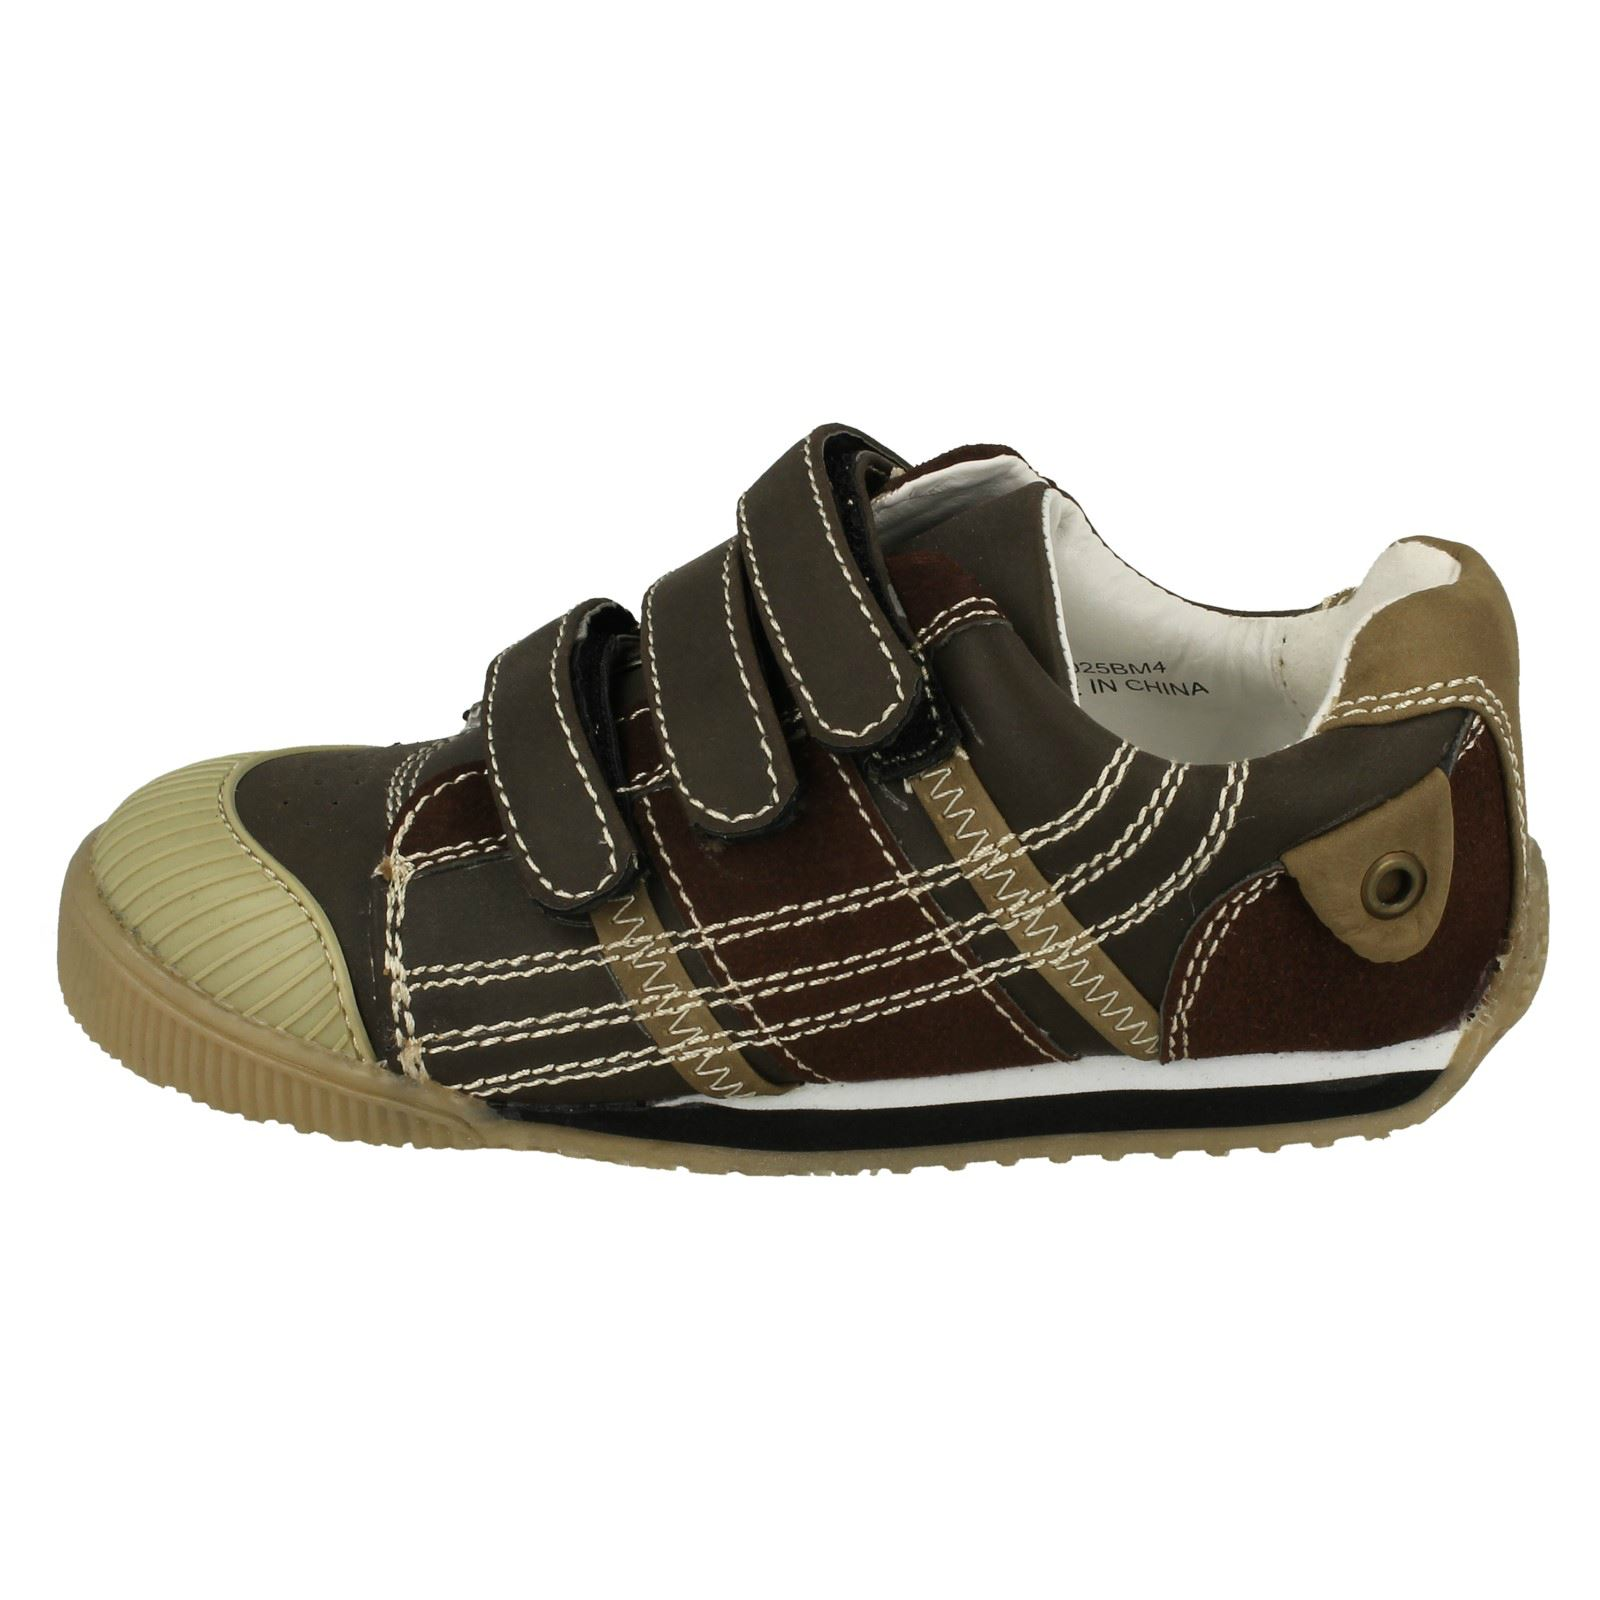 Chicos jc DEES N1025 Informal Zapatos